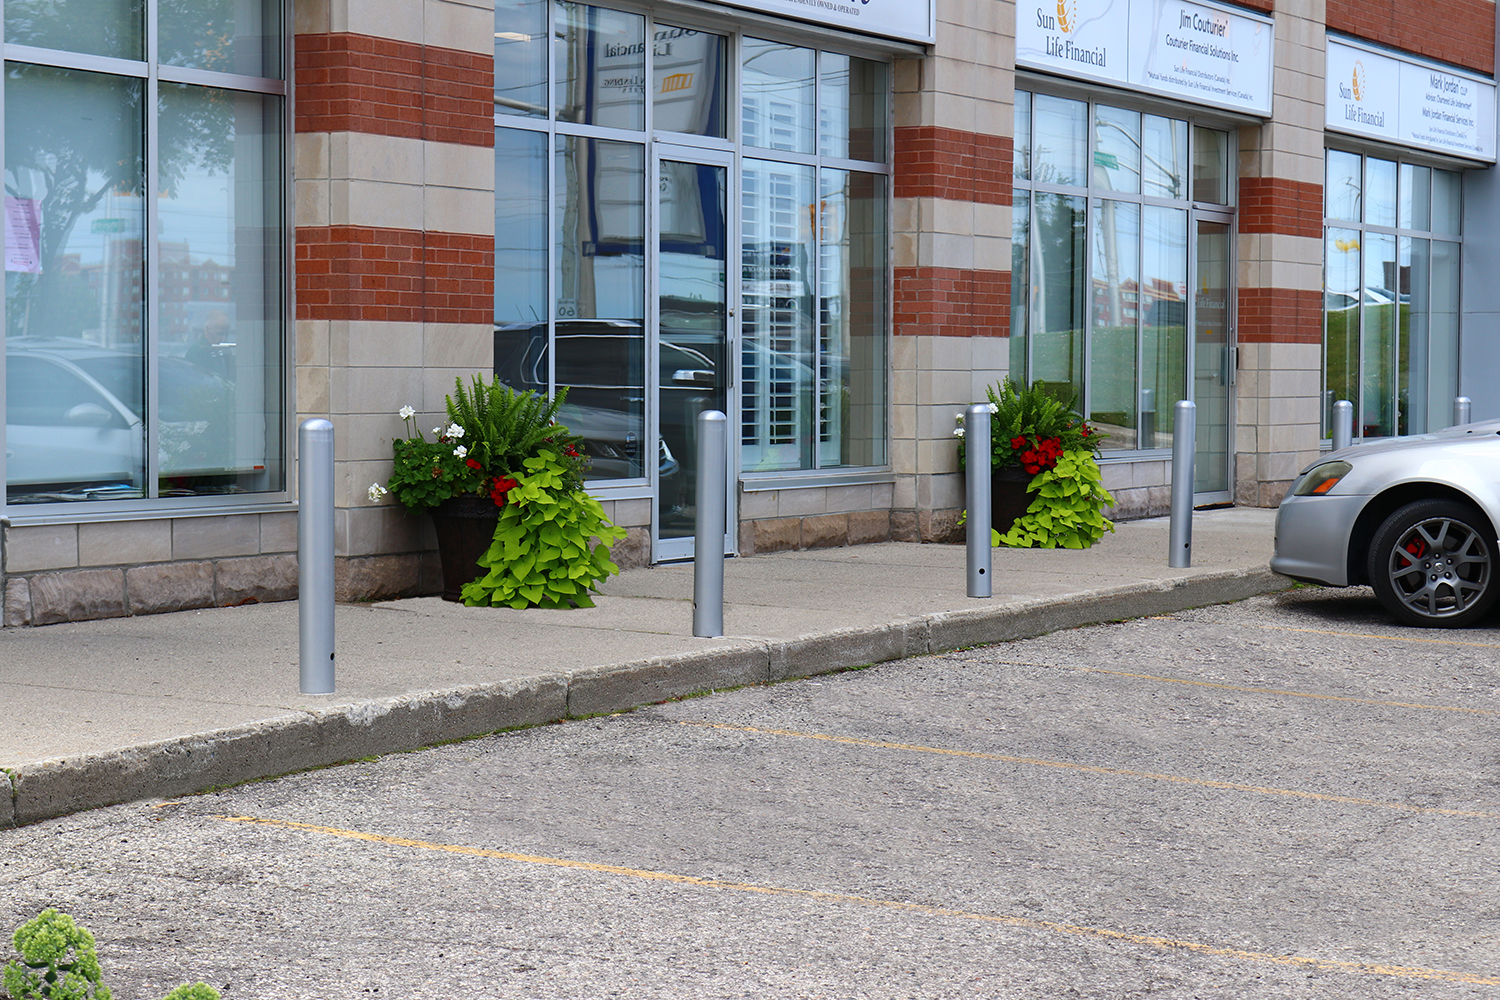 Bollards outside Sun Life Financial